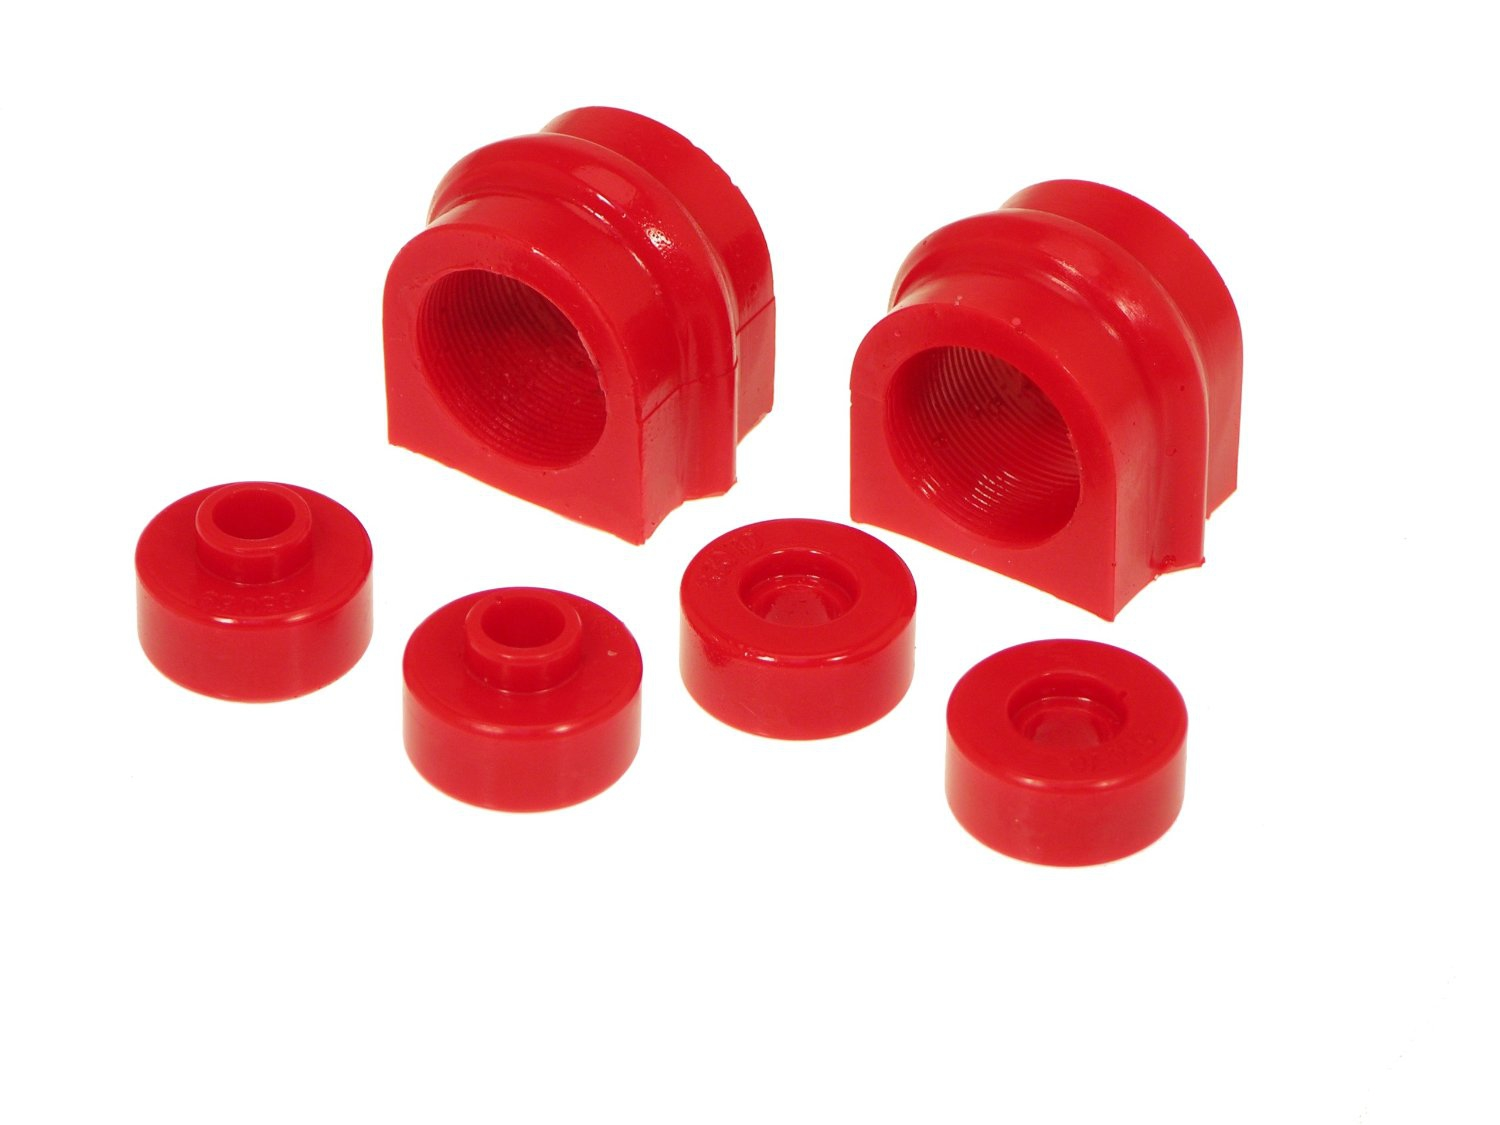 Prothane 14-1119 Front Sway Bar Bushing Kit, 27mm Red - Nissan 240SX 95-98 S14